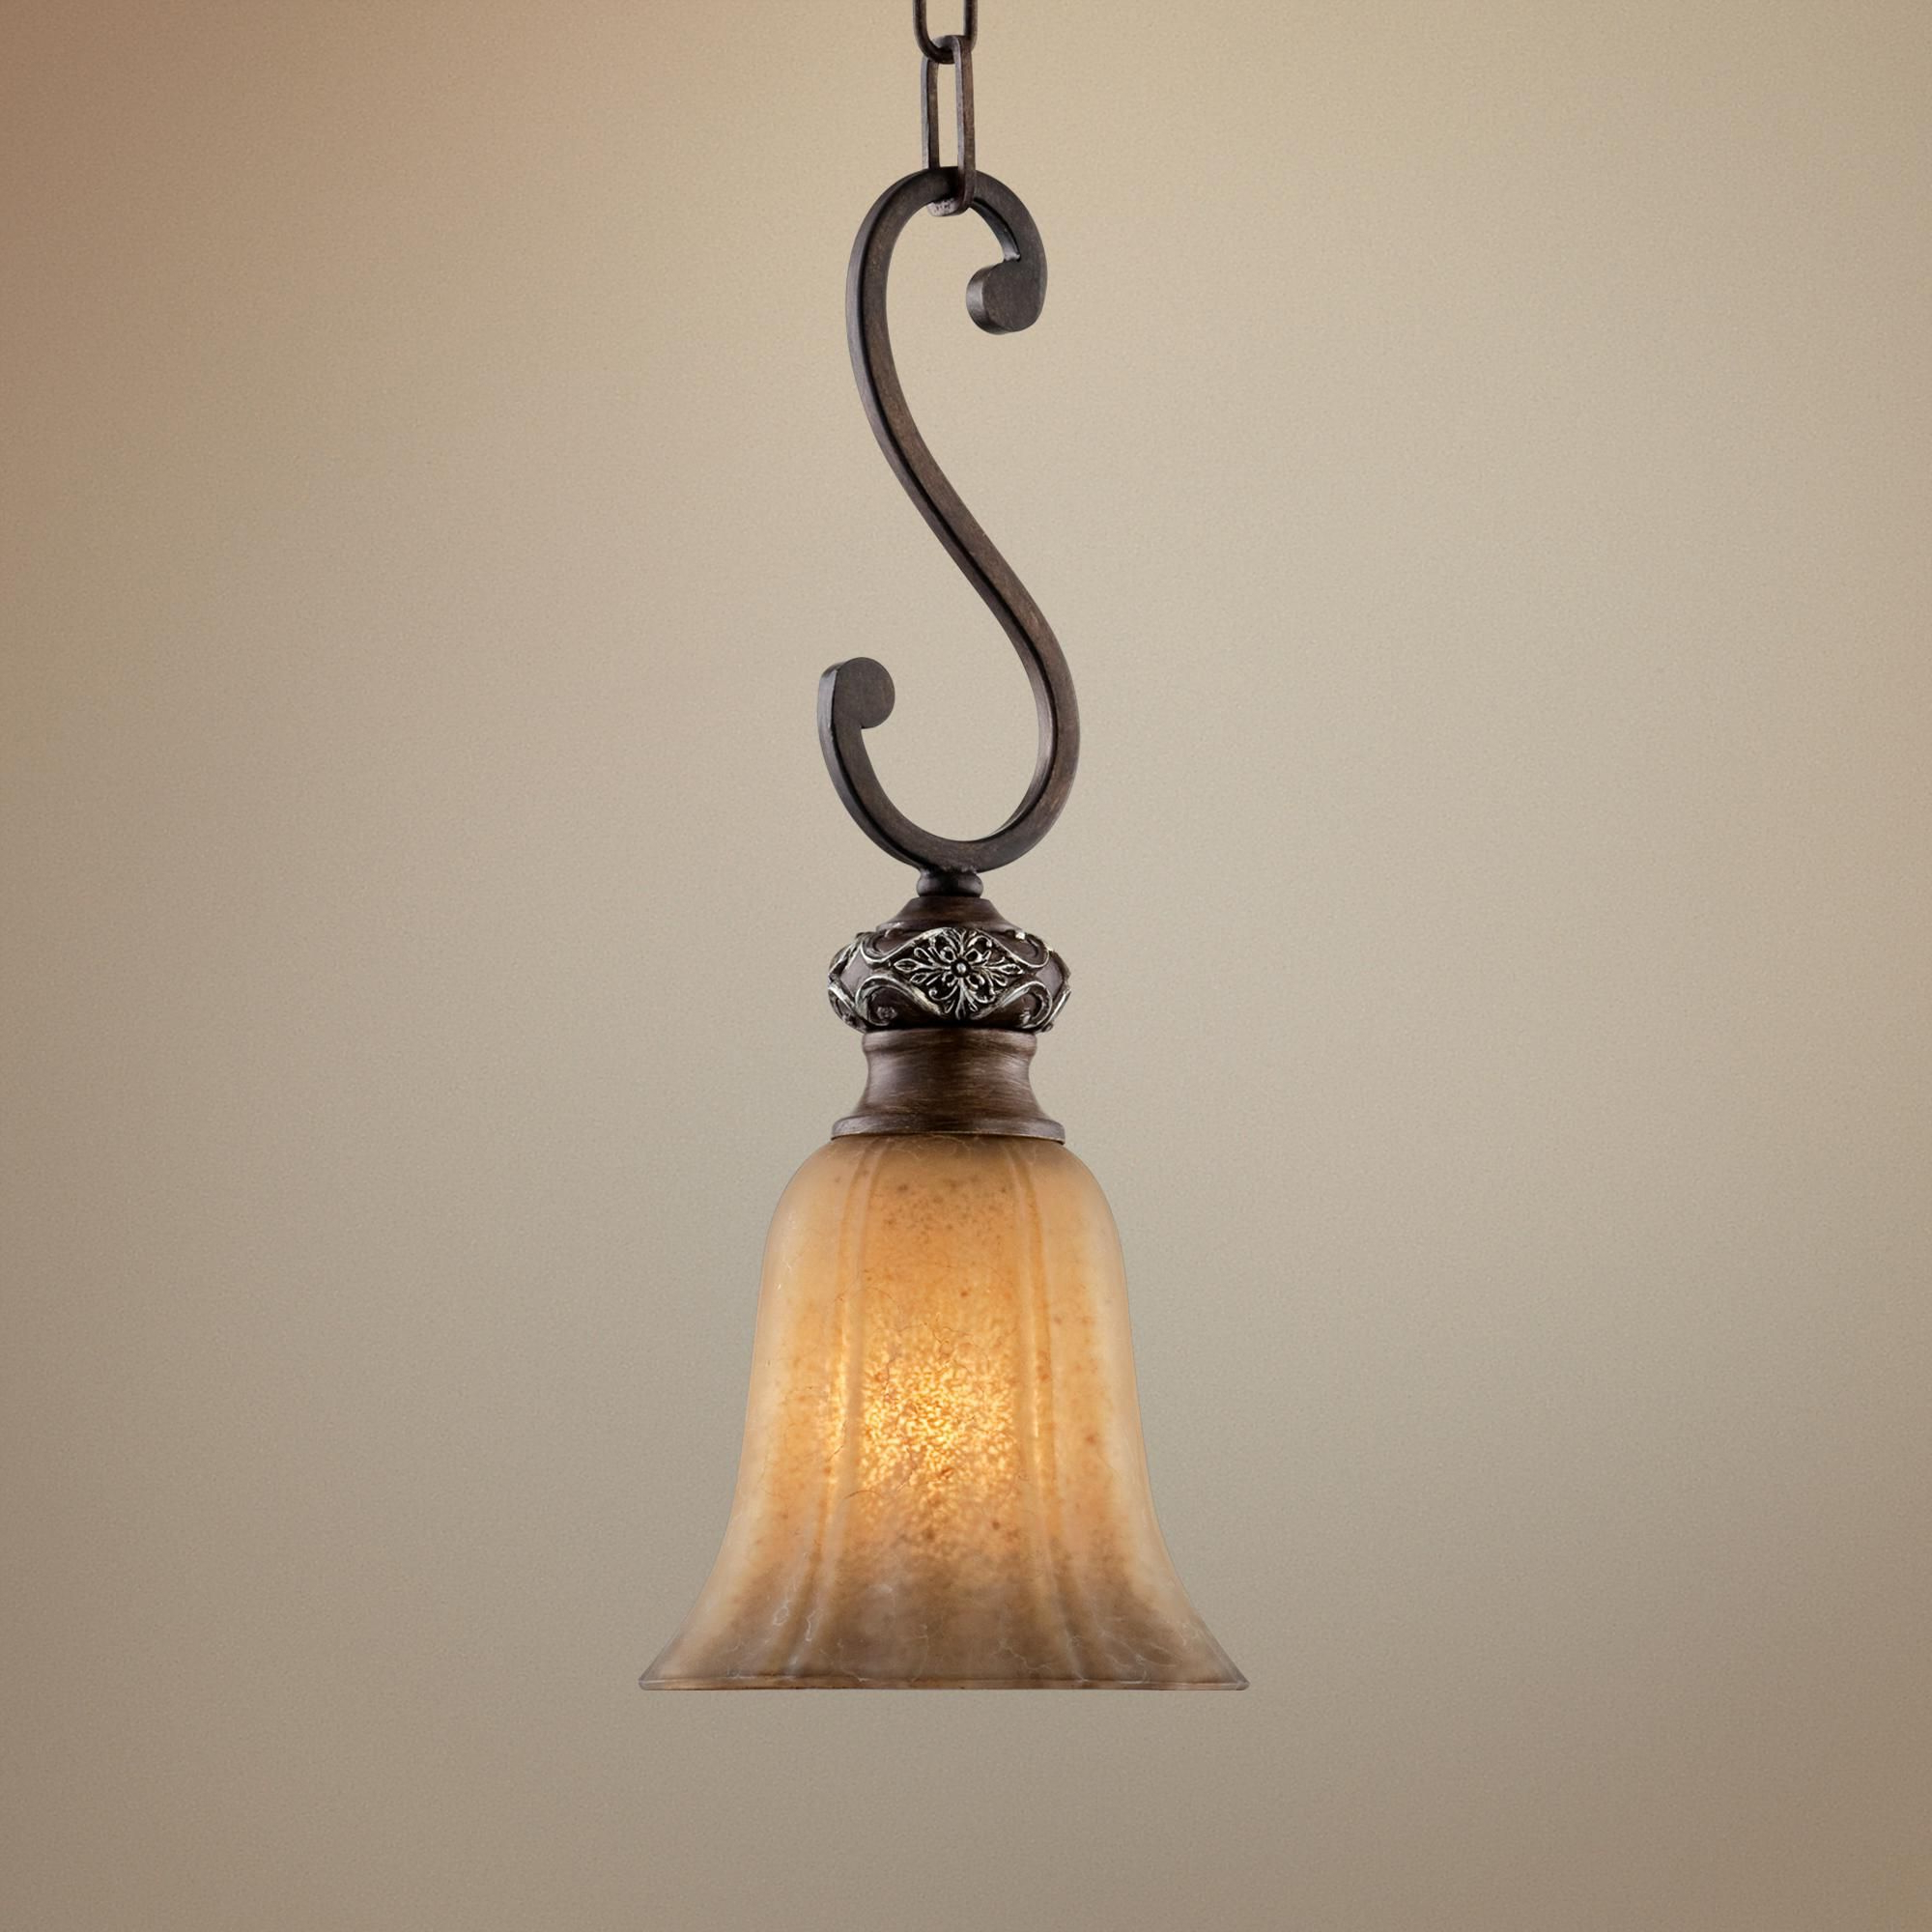 Most Popular Grullon Scroll 1 Light Single Bell Pendants Pertaining To Kathy Ireland Sterling Estate Mini Pendant Light – #r (View 23 of 25)